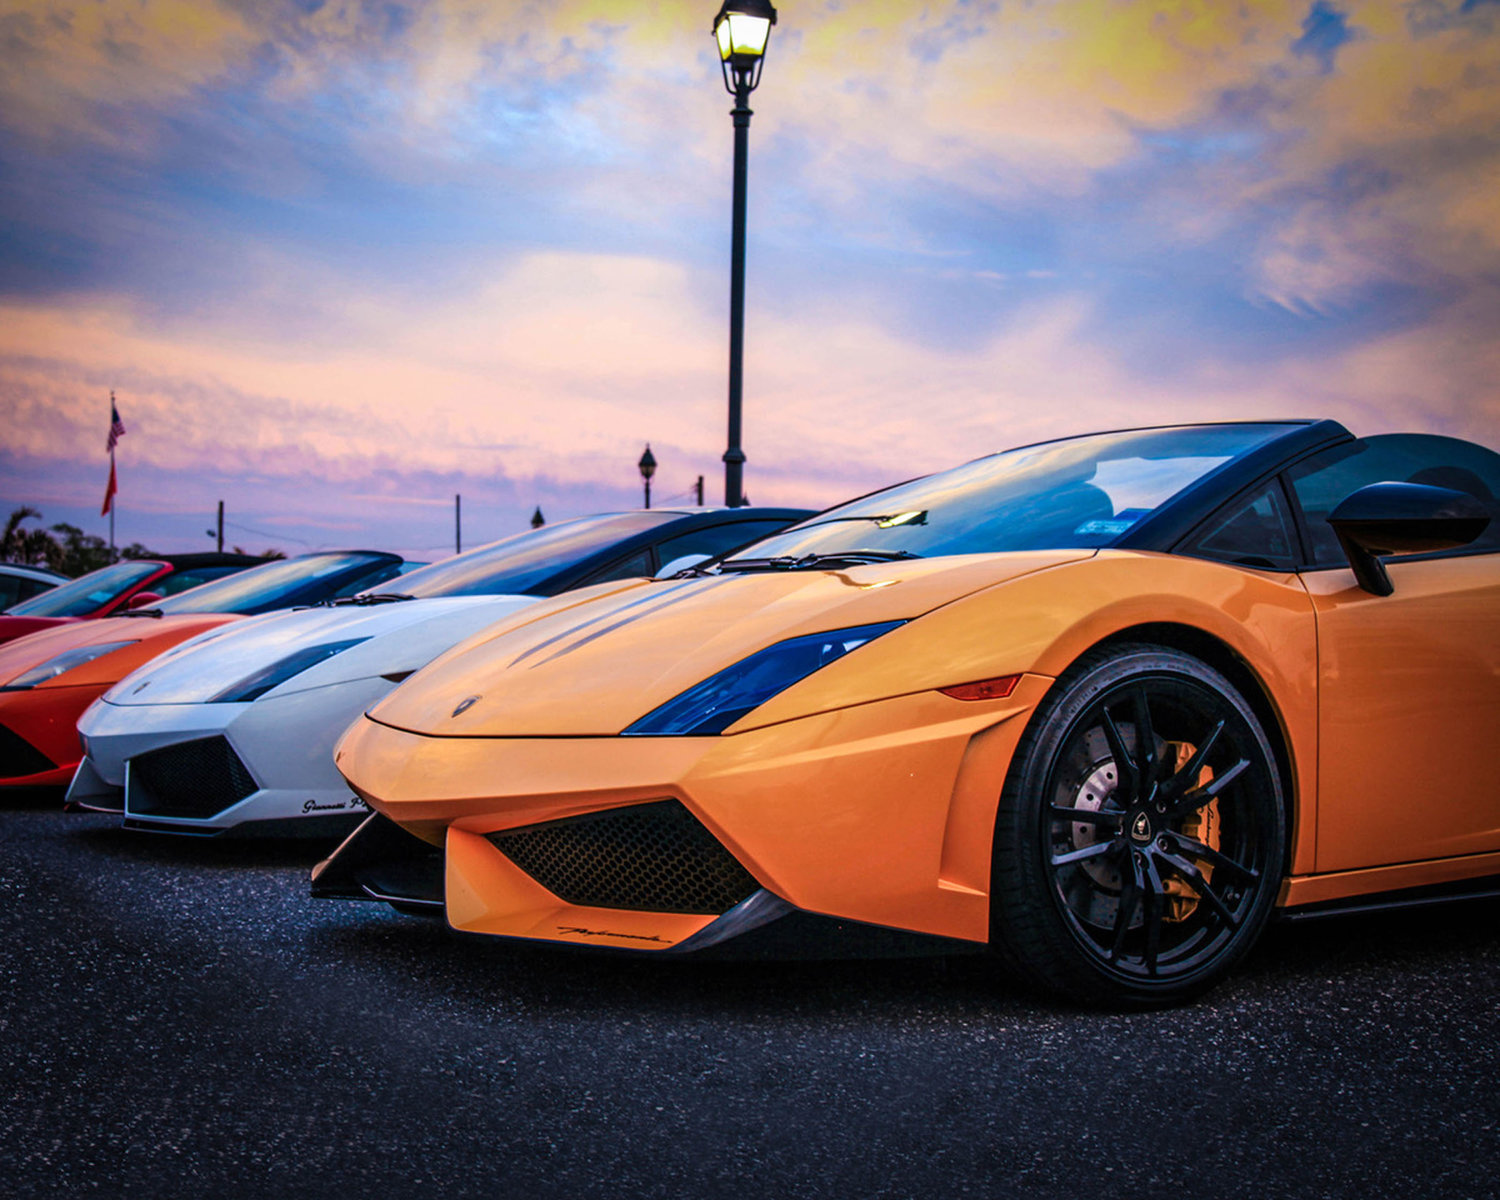 Kris King, a member of the Malverne Chamber of Commerce, photographed a row of Lamborghinis at the Long Island Exotic Club Car Show in Freeport in 2017.